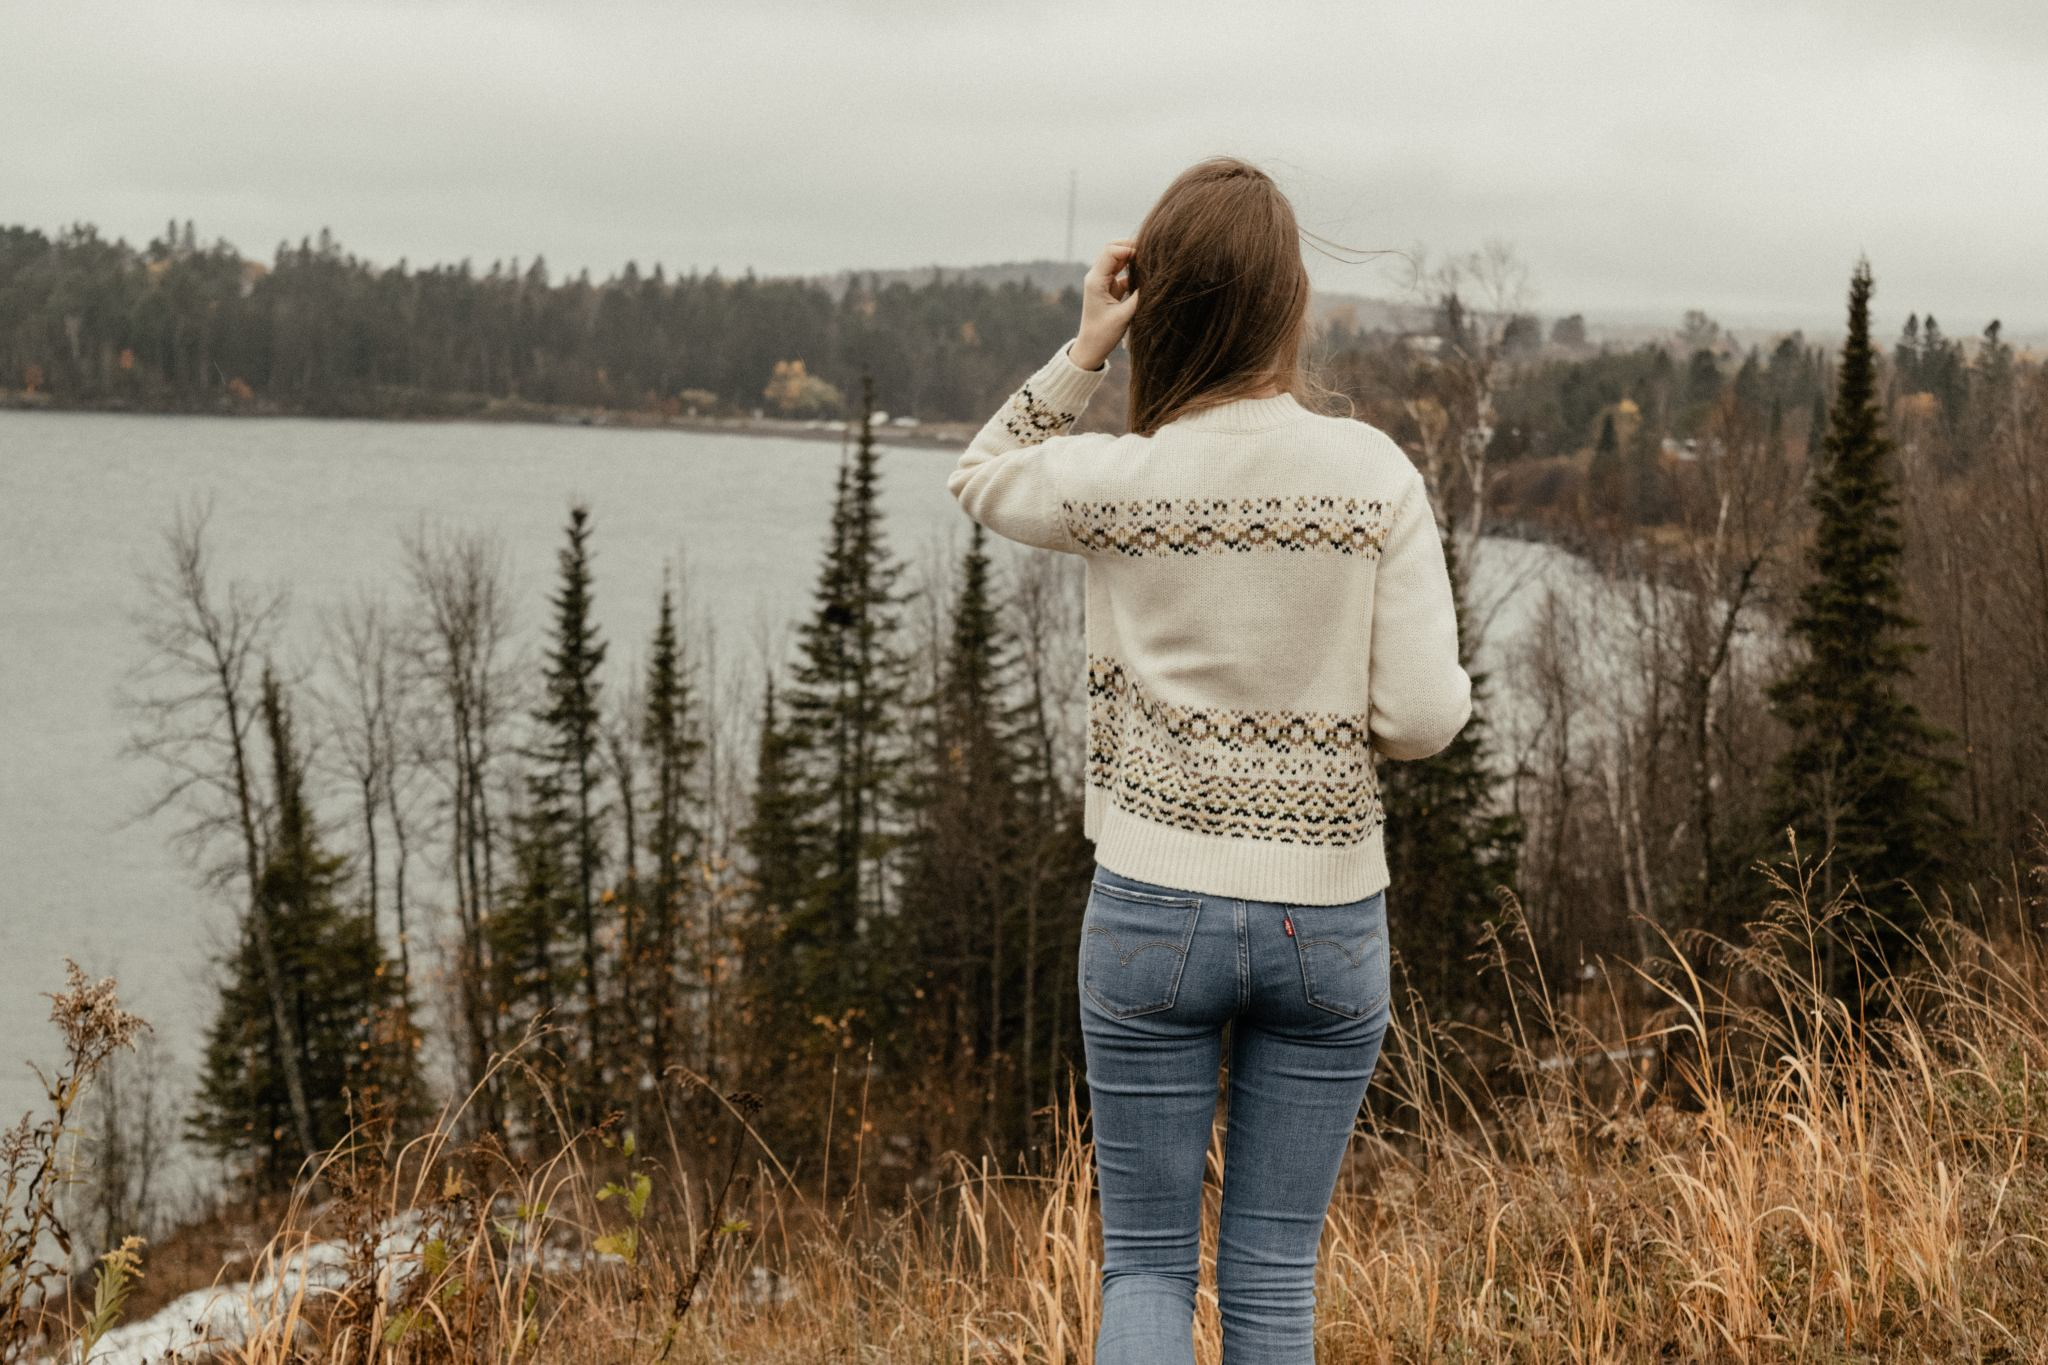 Postcards from the North Shore: A Two Harbors Getaway